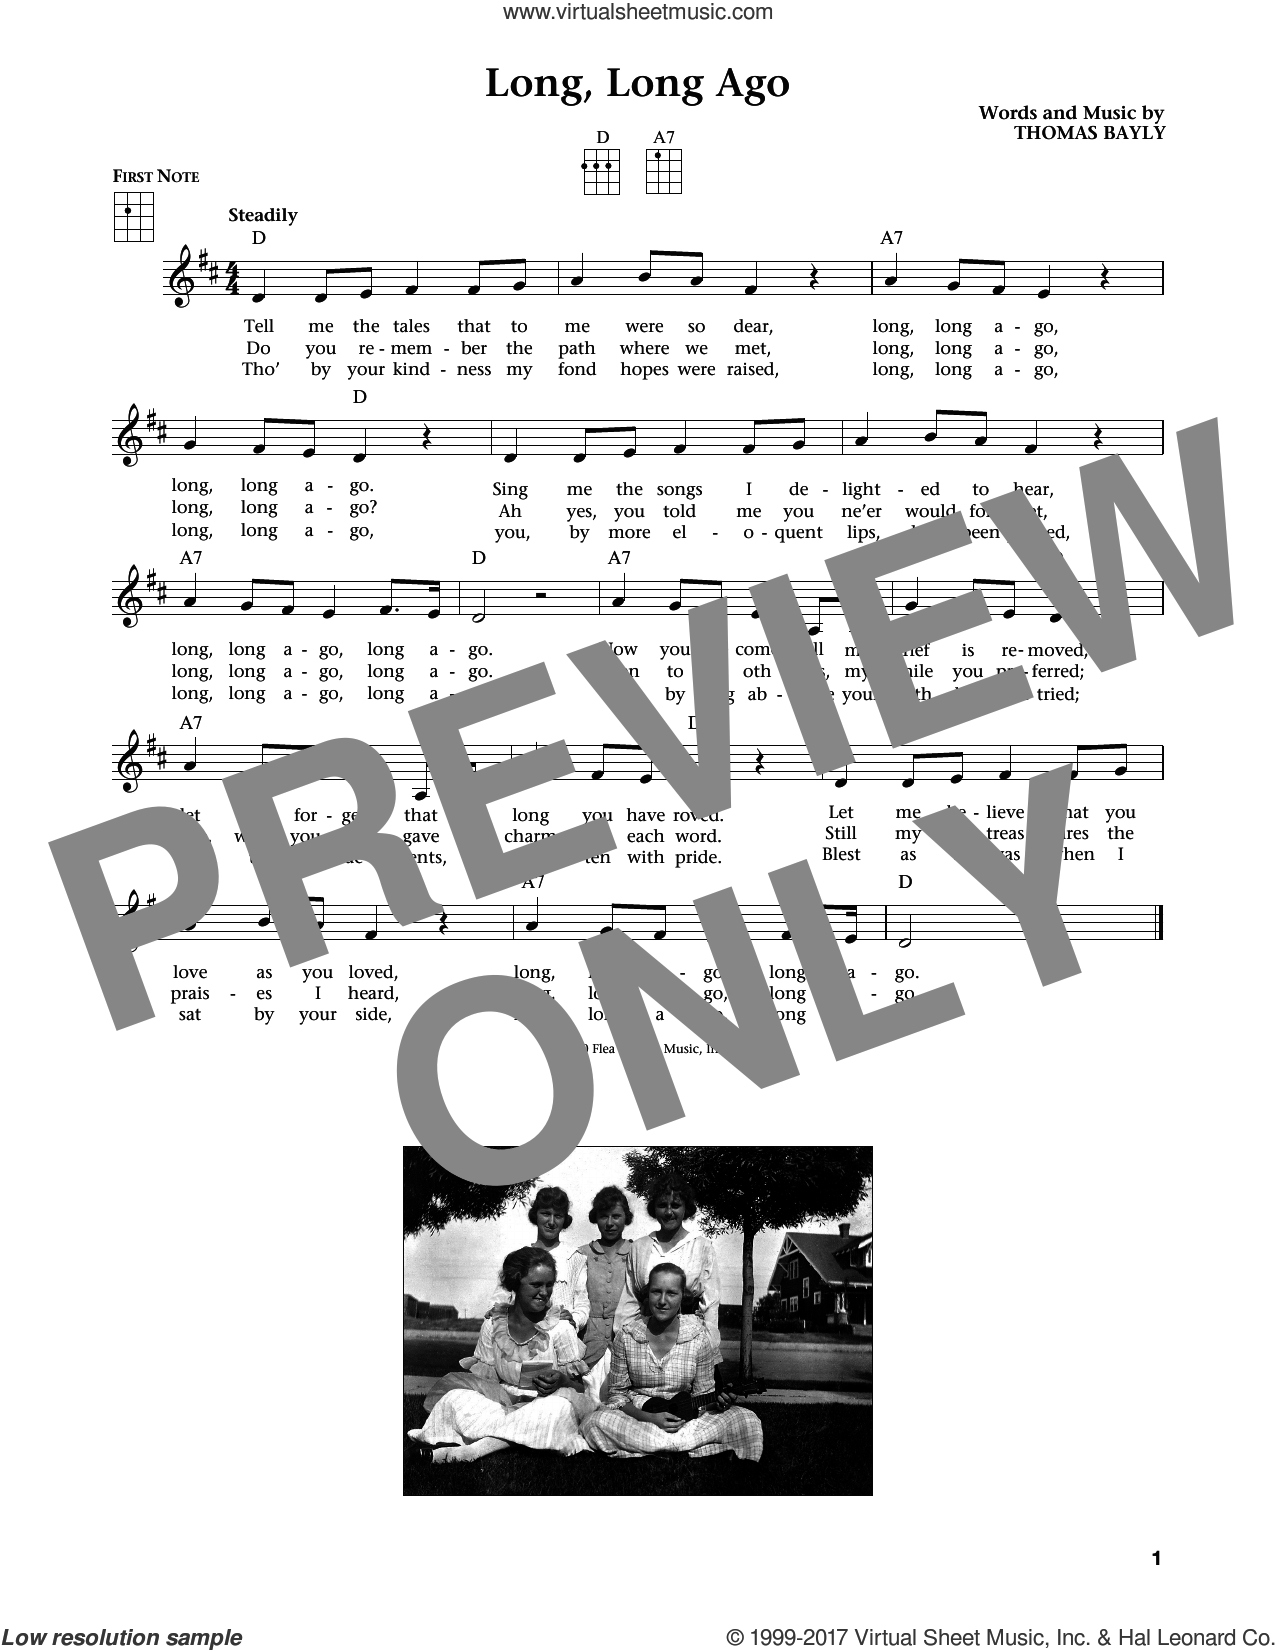 Long, Long Ago (from The Daily Ukulele) (arr. Liz and Jim Beloff) sheet music for ukulele by Thomas Bayly, Jim Beloff and Liz Beloff, intermediate skill level